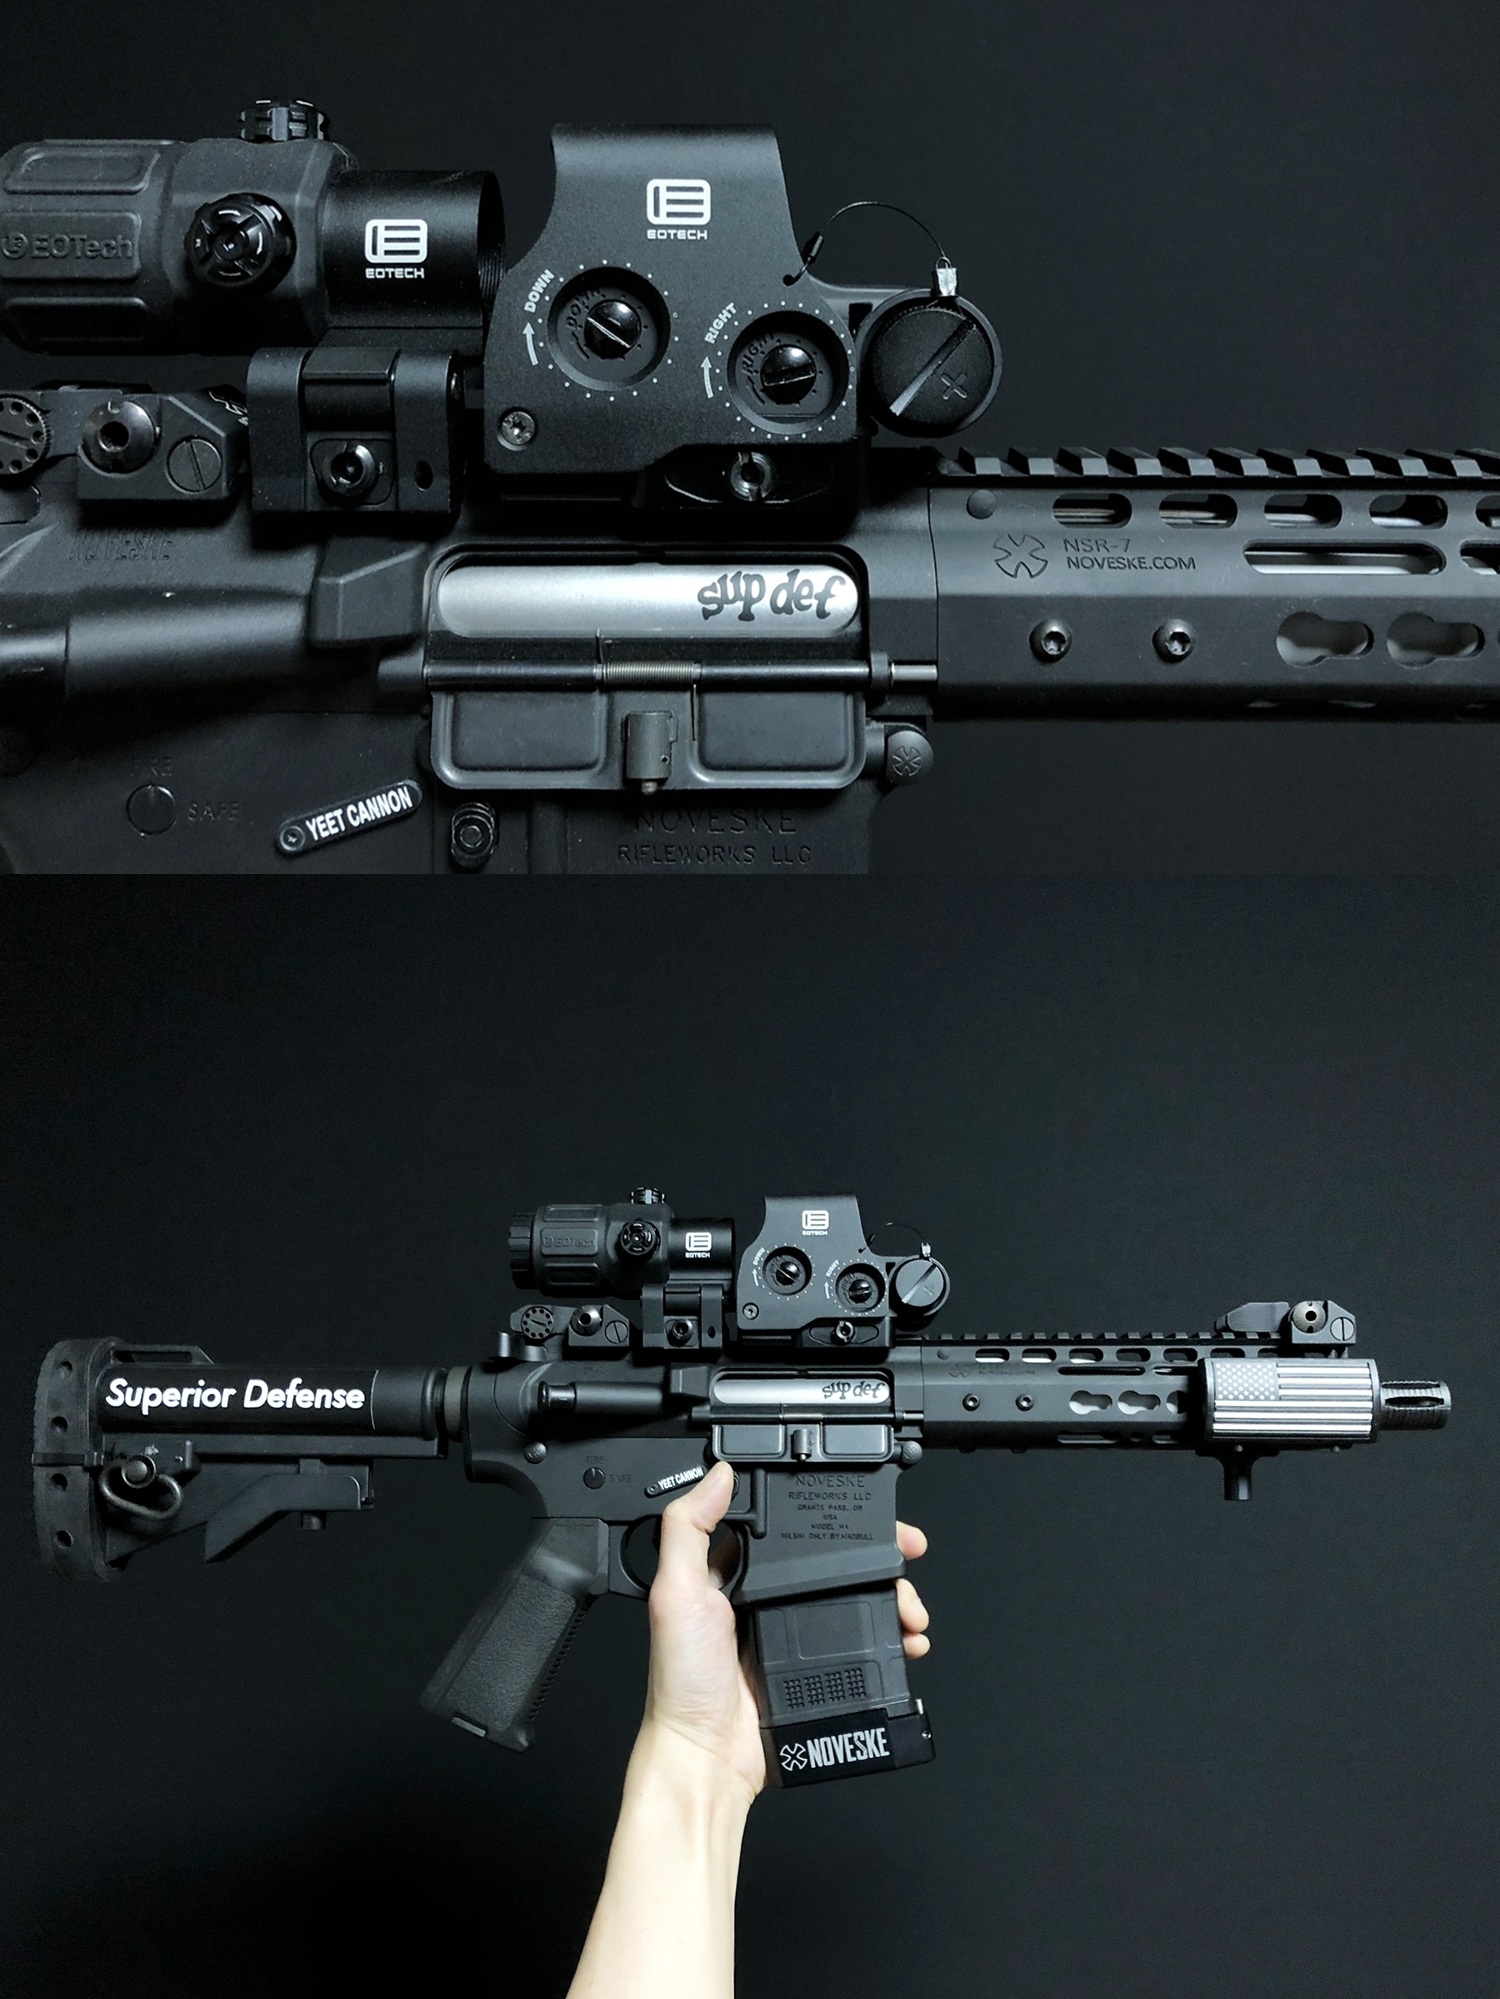 15 EVOLUTION GEAR 2020 改良版 EOTech EXPS3-0 NEW!! 最新リアルバージョンの改良点を徹底検証だ!! 新エボギア & 旧エボギア & 実物 イオテック ホロサイト!! 開封 比較 検証 取付 レビュー!!